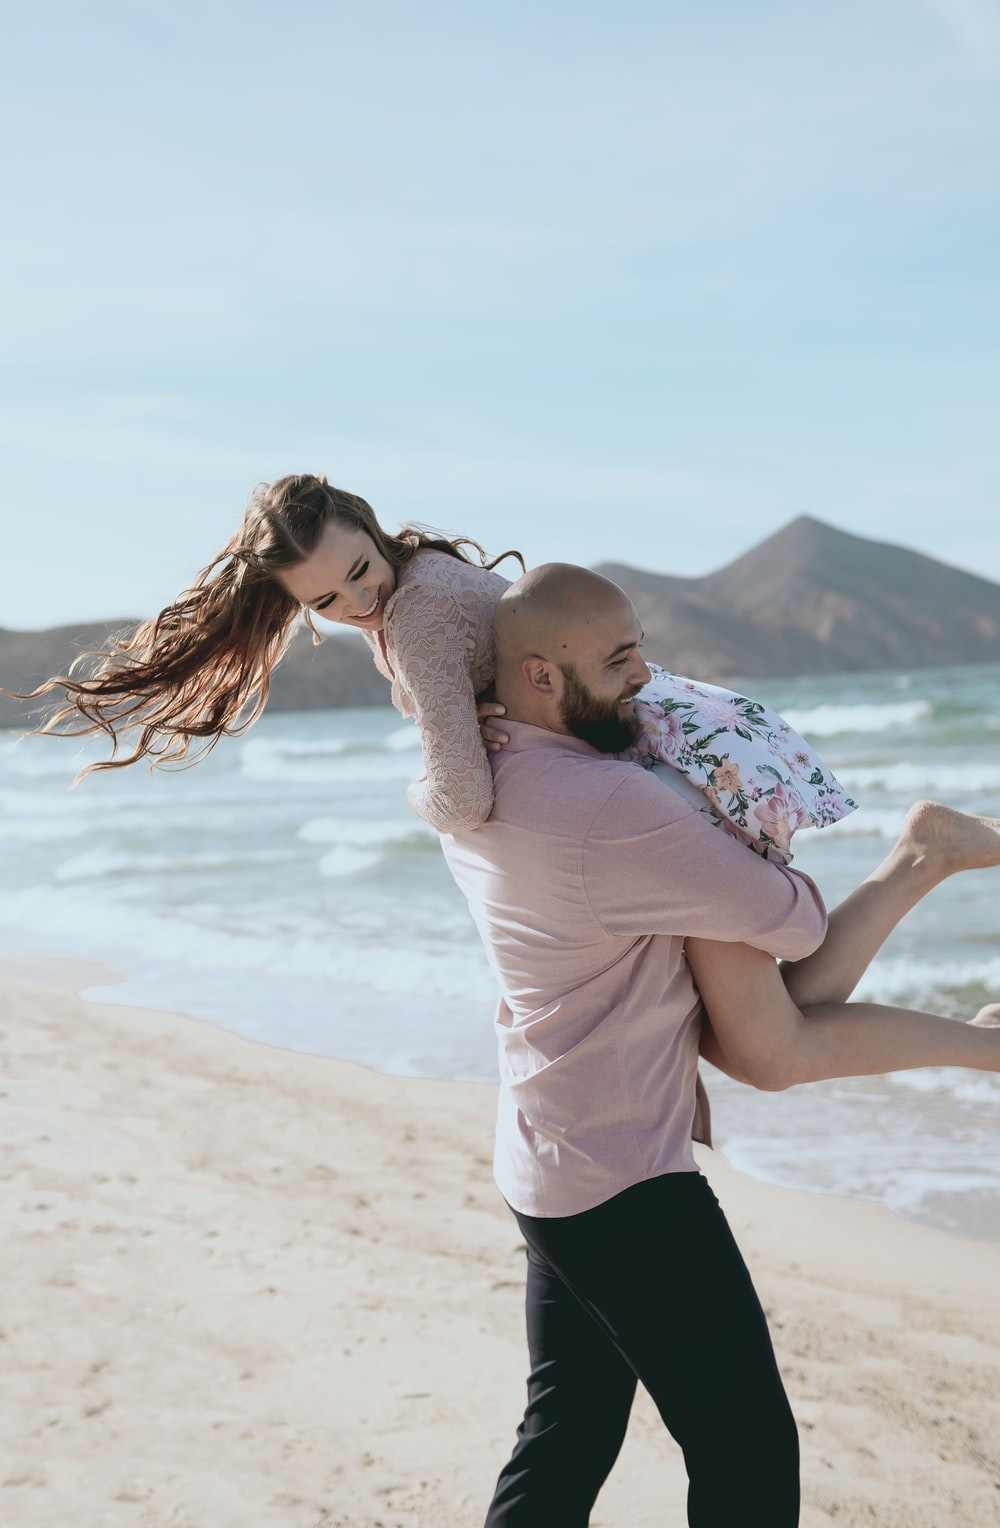 man and woman kissing on beach during daytime